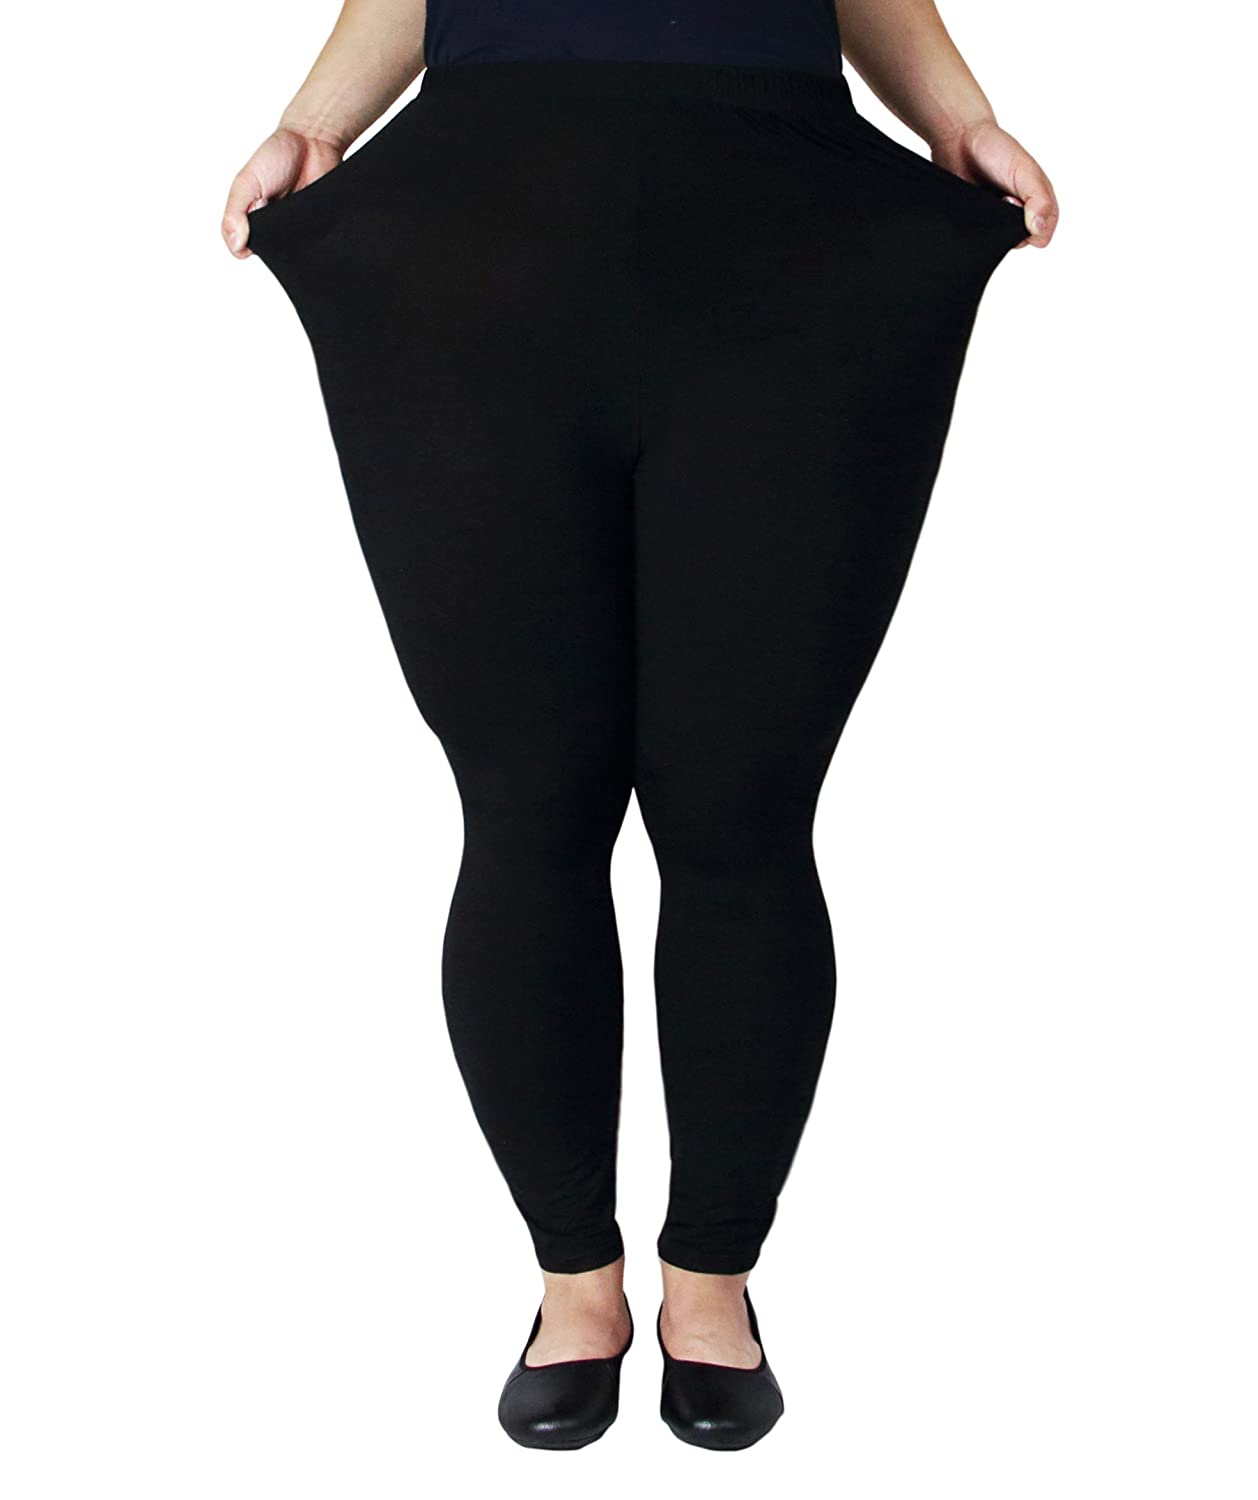 Leggings Plus size | Amazon.com